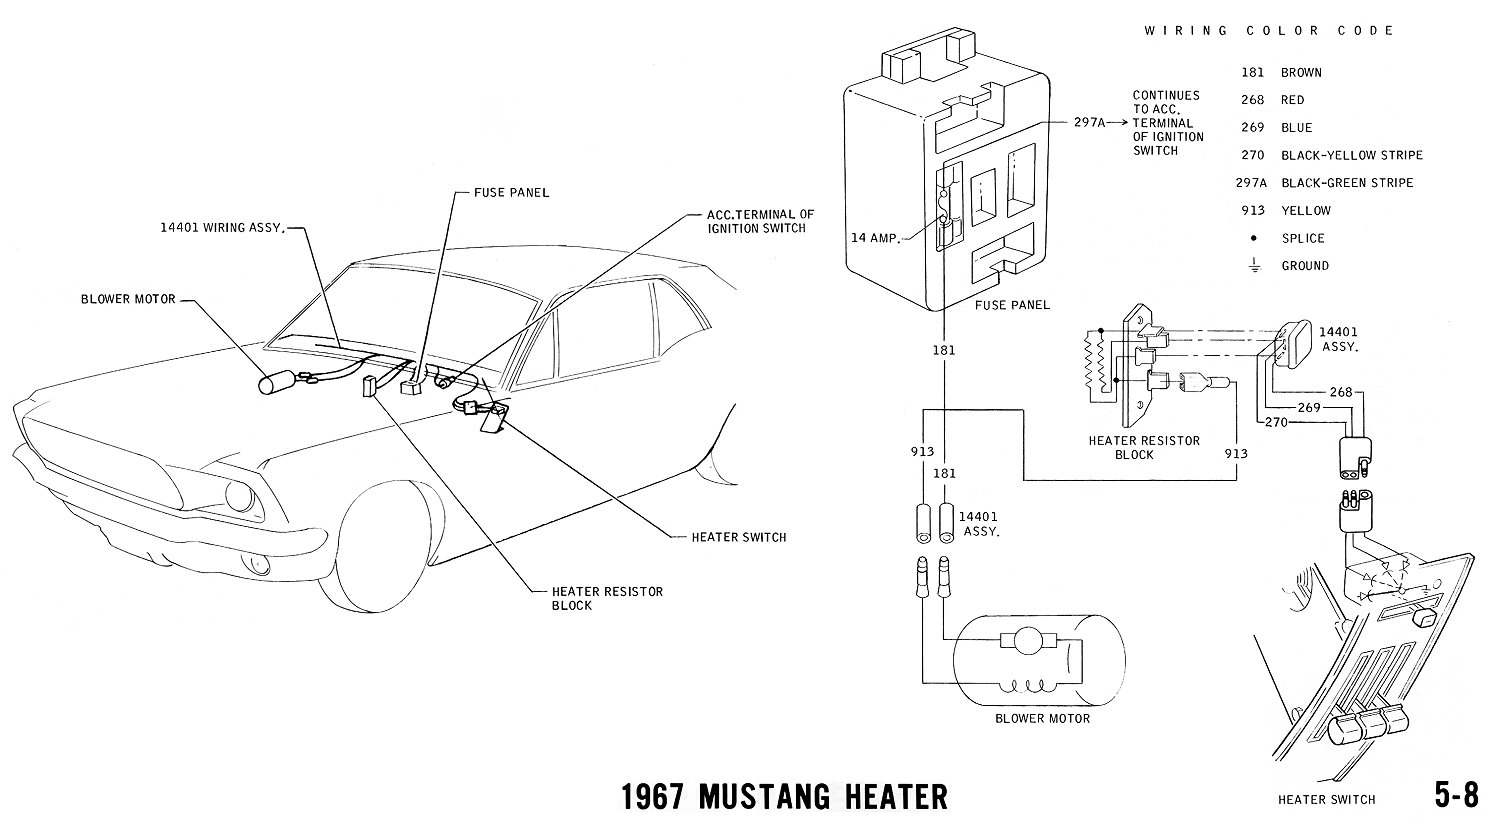 67heater 1967 mustang heater blower vintage mustang forums engine wiring diagram 1967 mustang v8 at mifinder.co